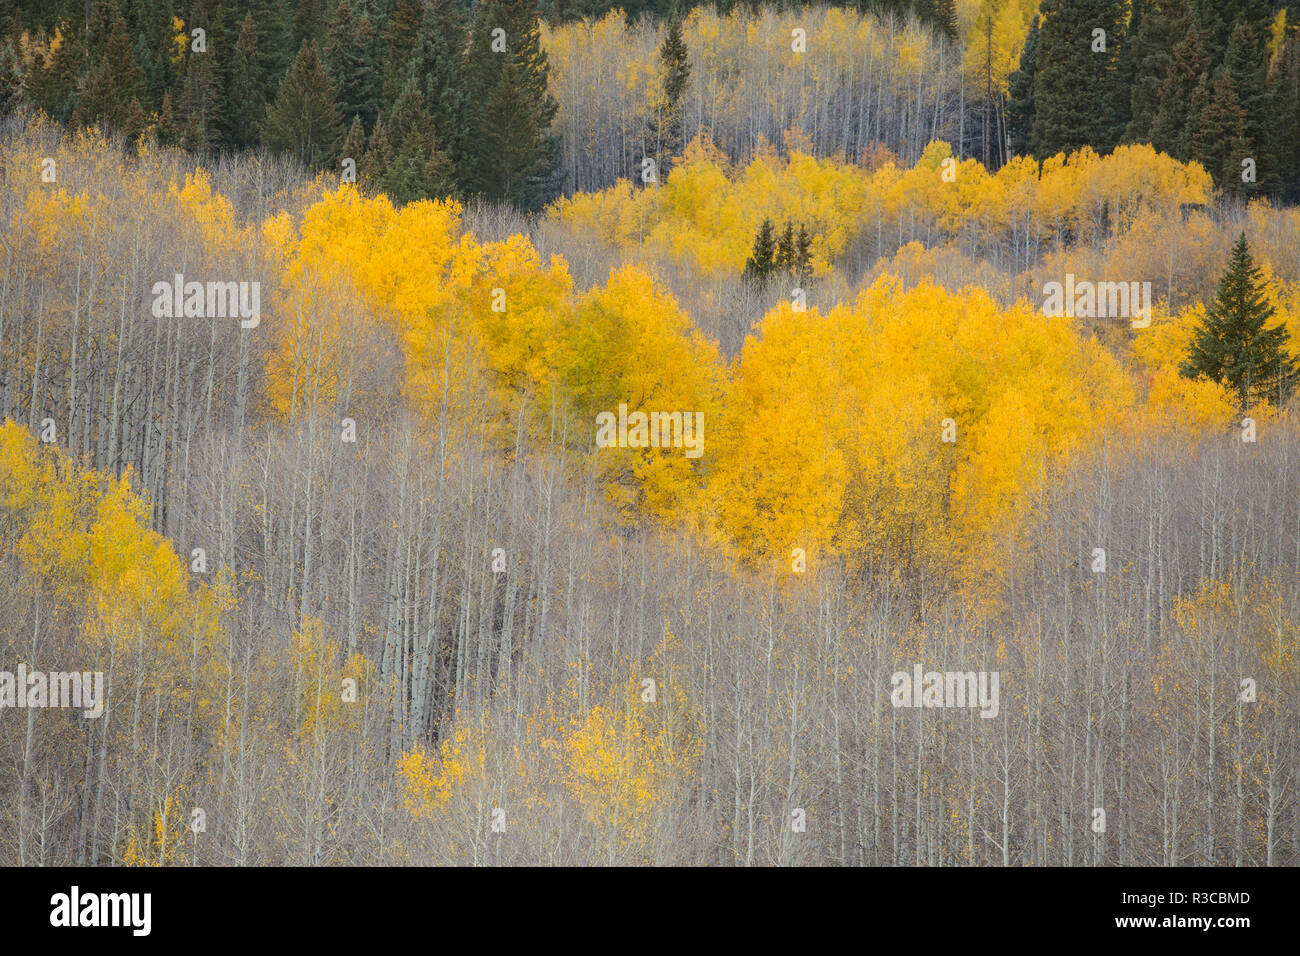 USA, Colorado, Gunnison National Forest. Aspens in fall color. - Stock Image